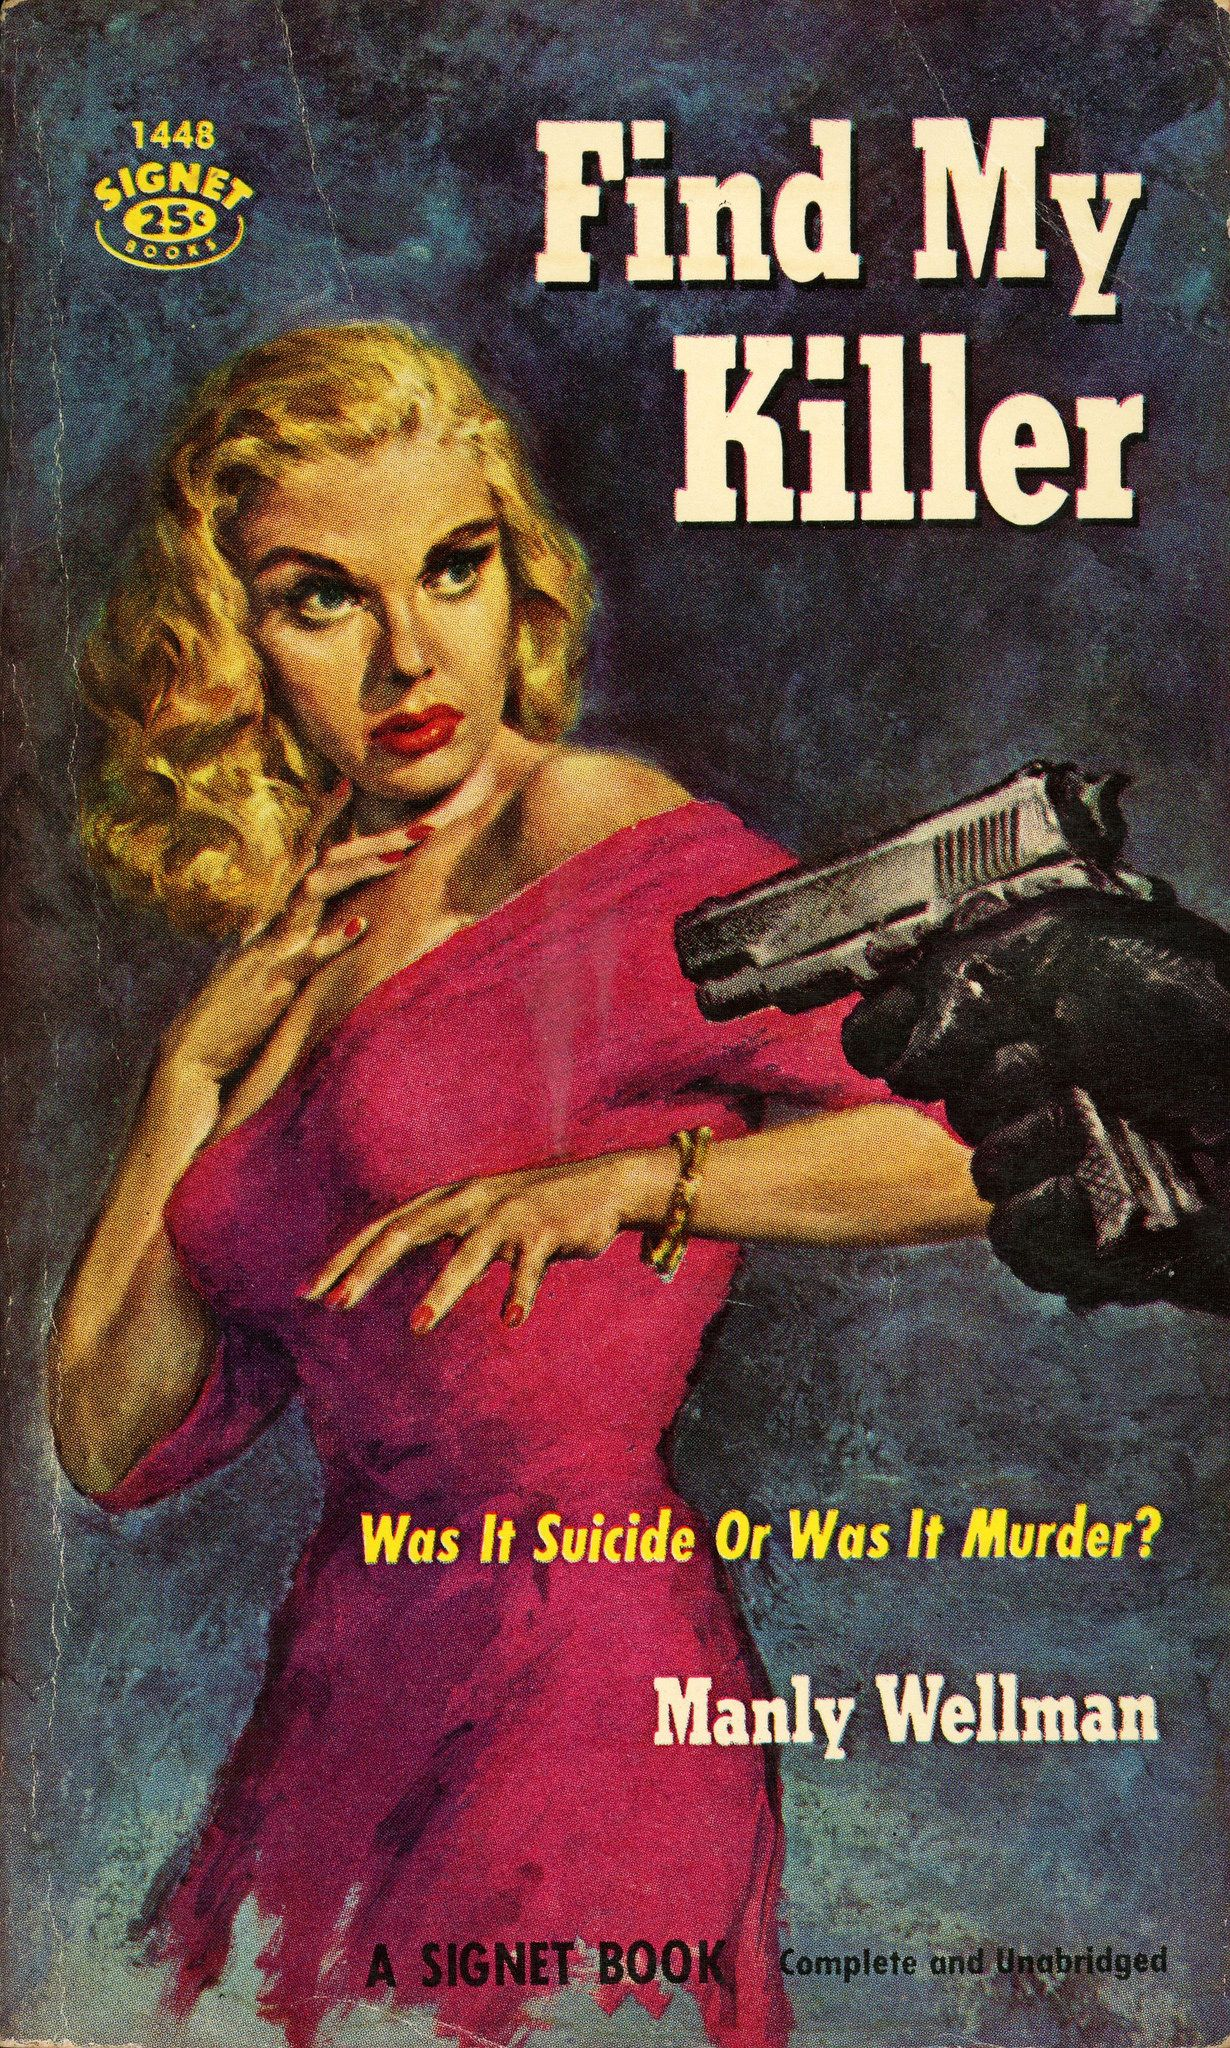 Find My Killer - Manly Wellman. Cover art by Paul Rader.